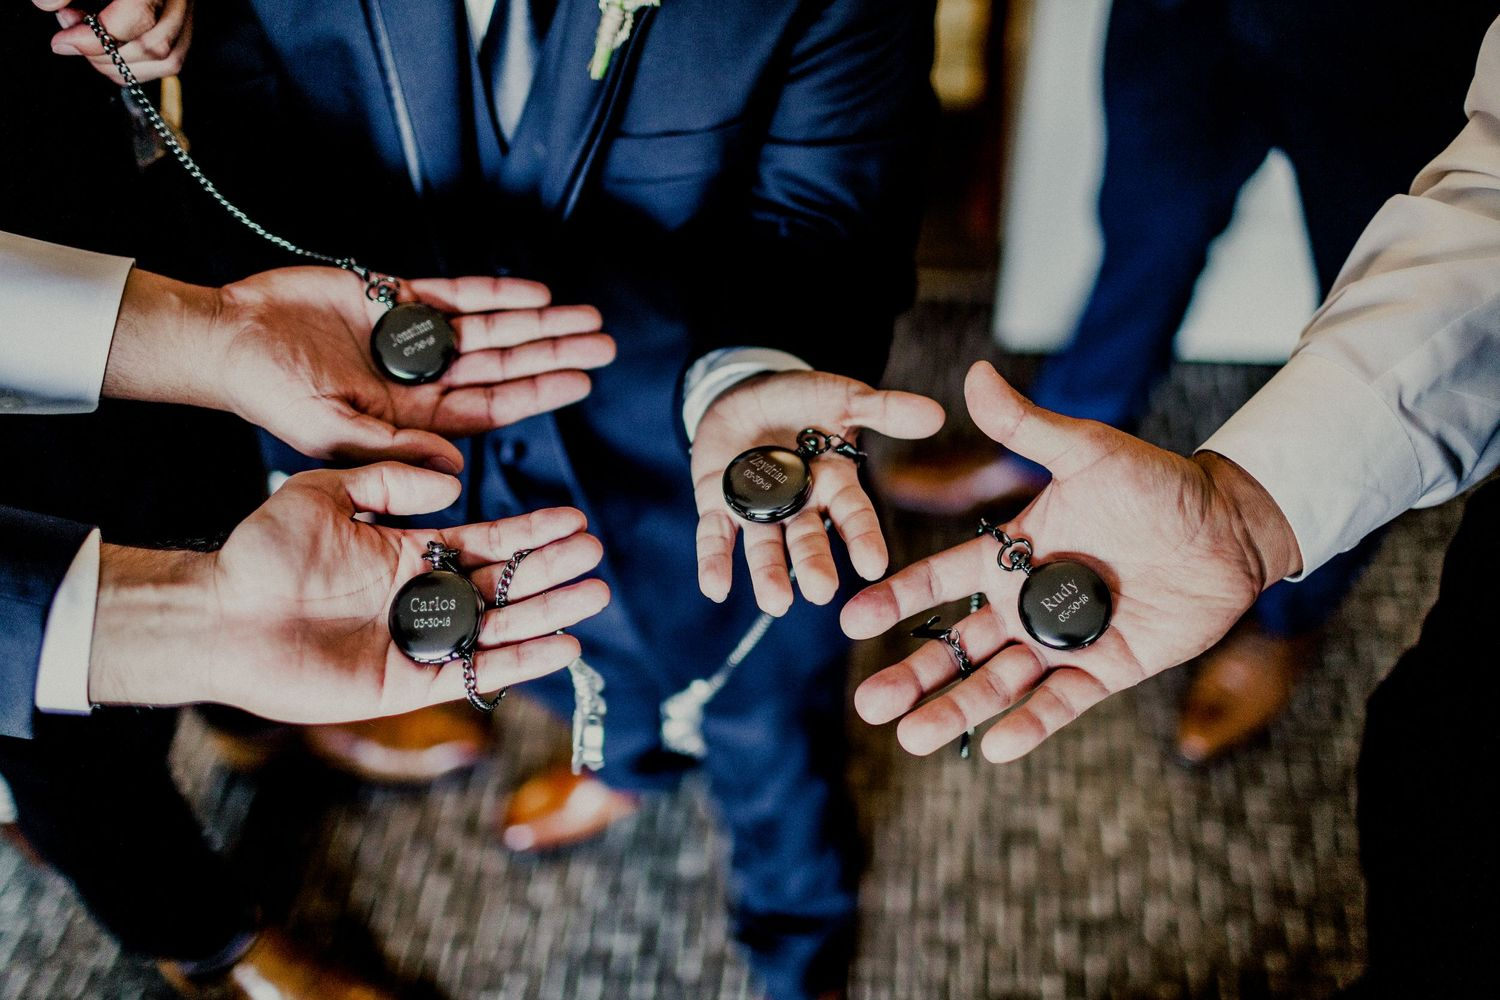 shot of custom pocket watch with groomsmen engravings